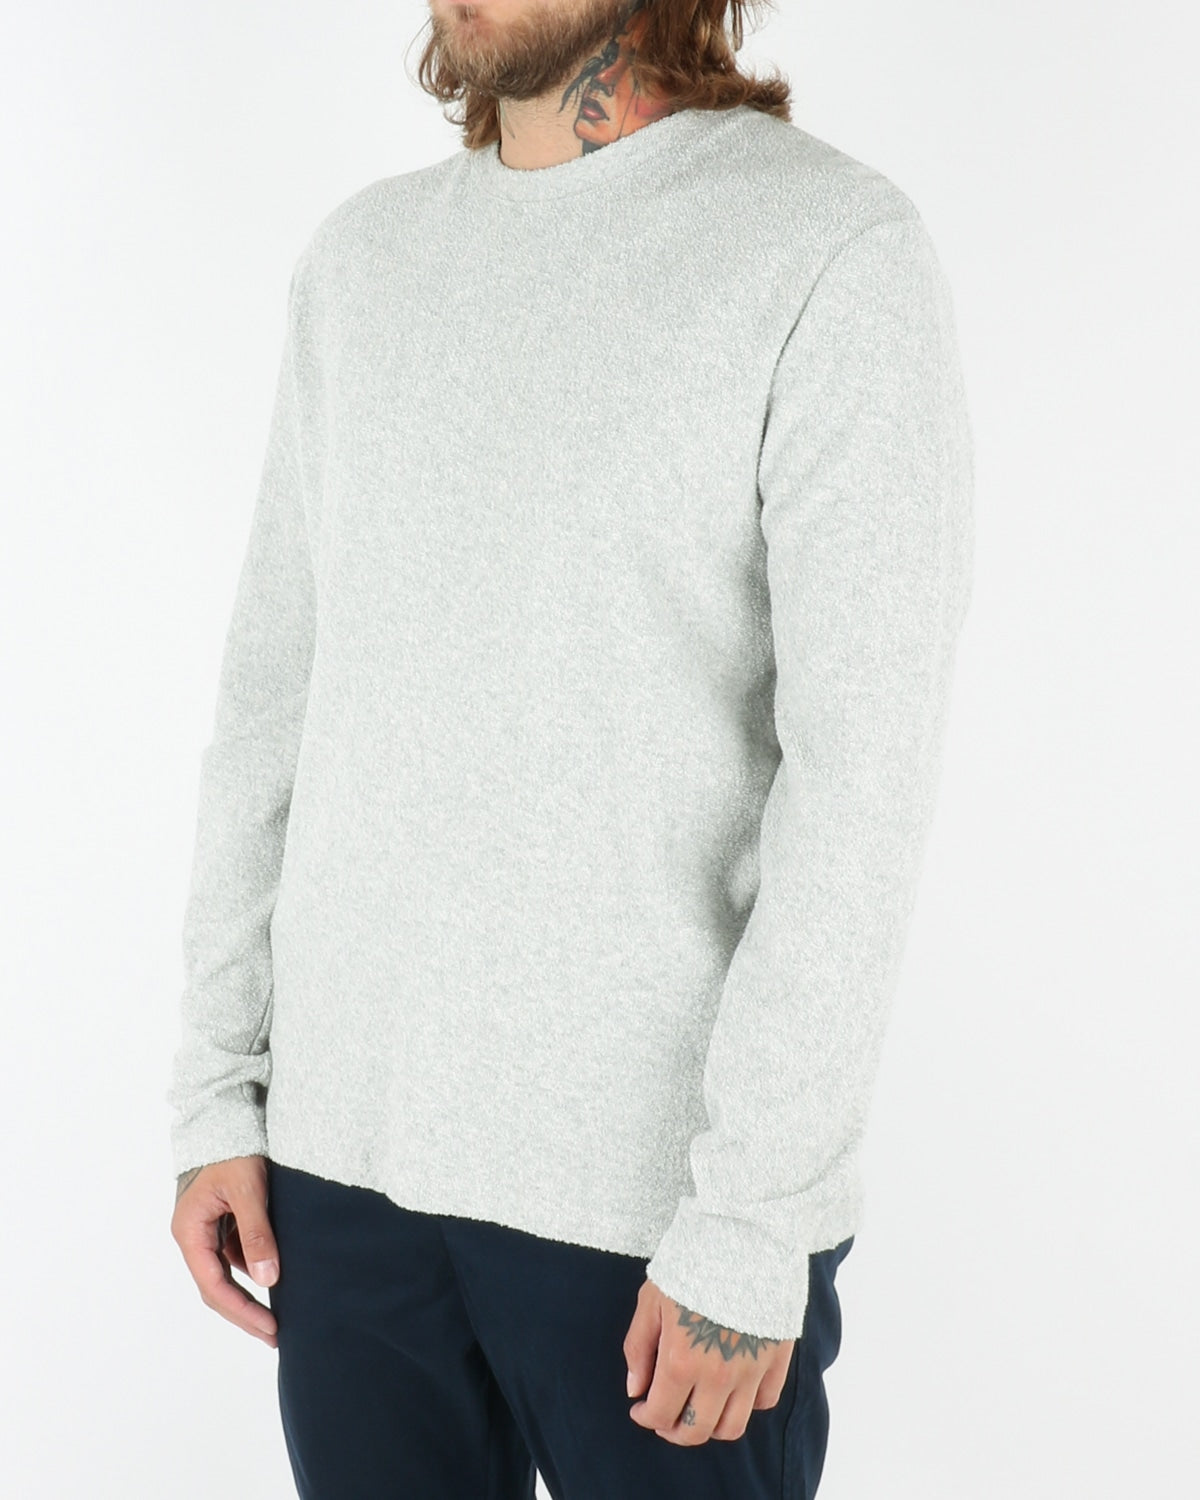 wac we are copenhange_giaccherini_o-neck_longsleeve_ecru melange_view_2_3